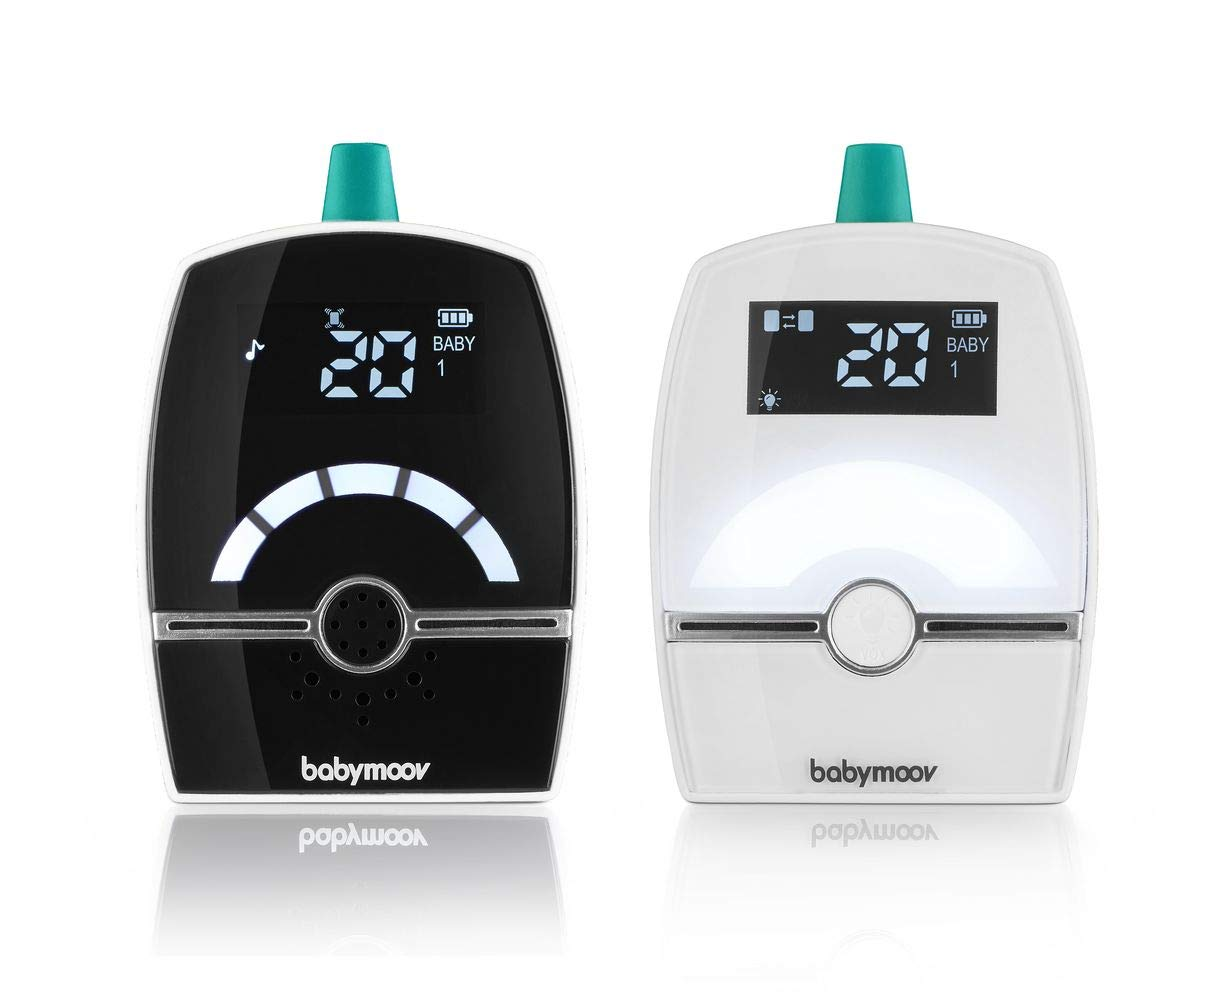 BABYMOOV Premium Care Audio Baby Monitor, 1400 m BABYMOOV Digital green technology: this innovation reduces wave emissions from your baby monitor and guarantees the longest range on the market. premium care has a 1400m range: ideal for a house Complete: this baby monitor has a 3-alert vex mode (visual, audio, or vibration) and an out-of-range/ low battery alarm. you can connect two transmitters to monitor two children! Night light, lullabies, and temperature: premium care emits a soft light and plays lullabies. the temperature indicator enables you to monitor the temperature in the baby's room 1